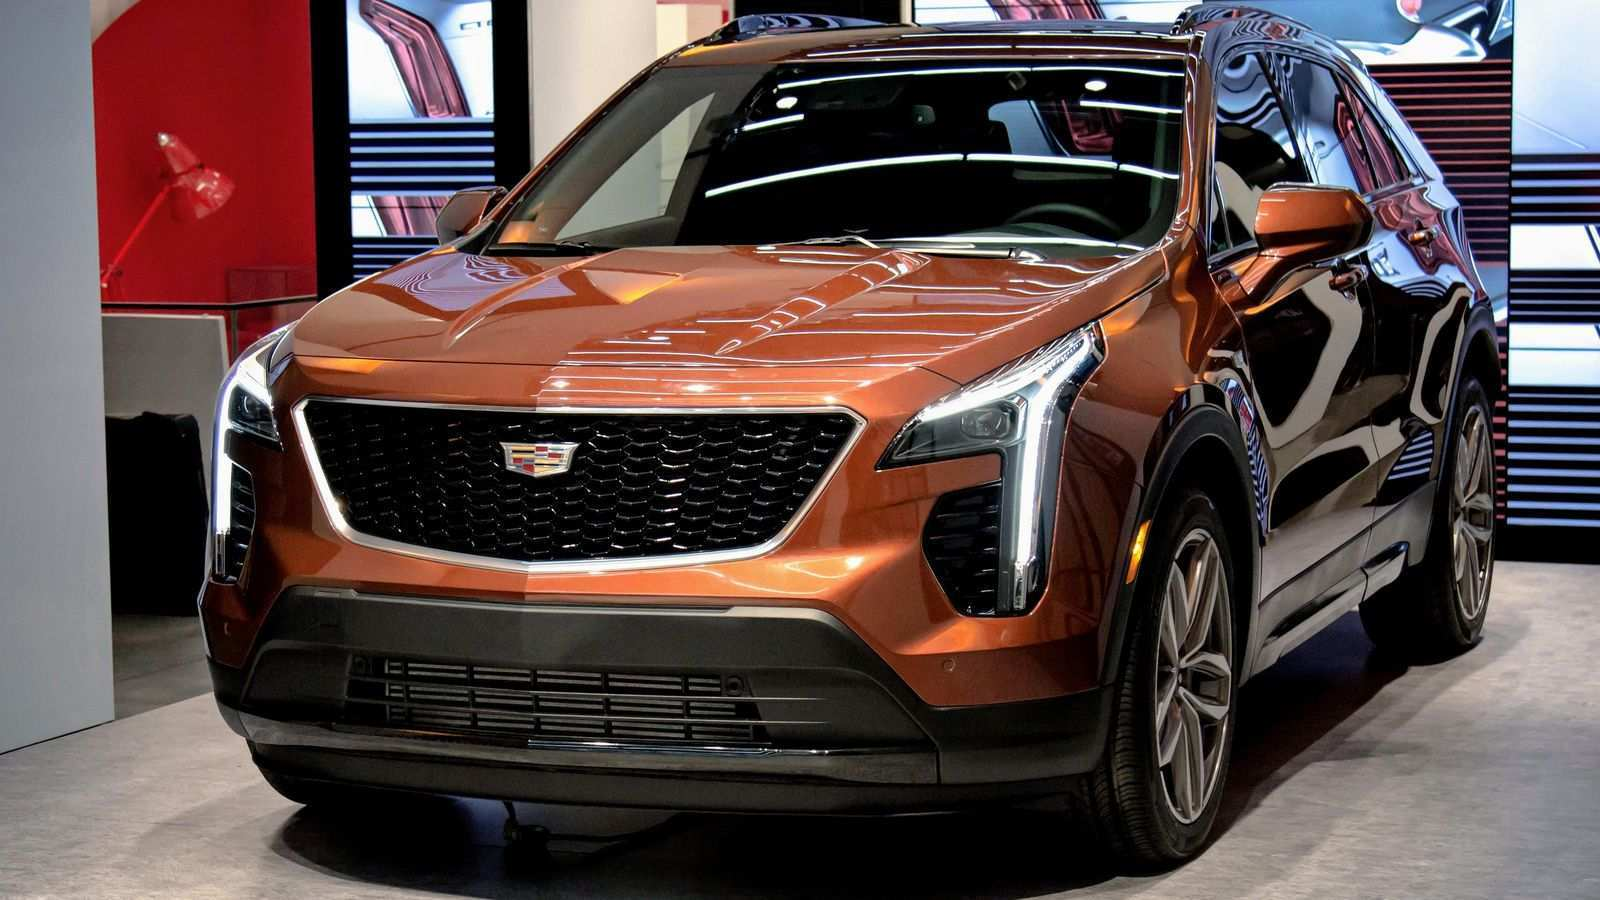 26 New 2019 Cadillac Suv Xt5 Redesign and Concept for 2019 Cadillac Suv Xt5